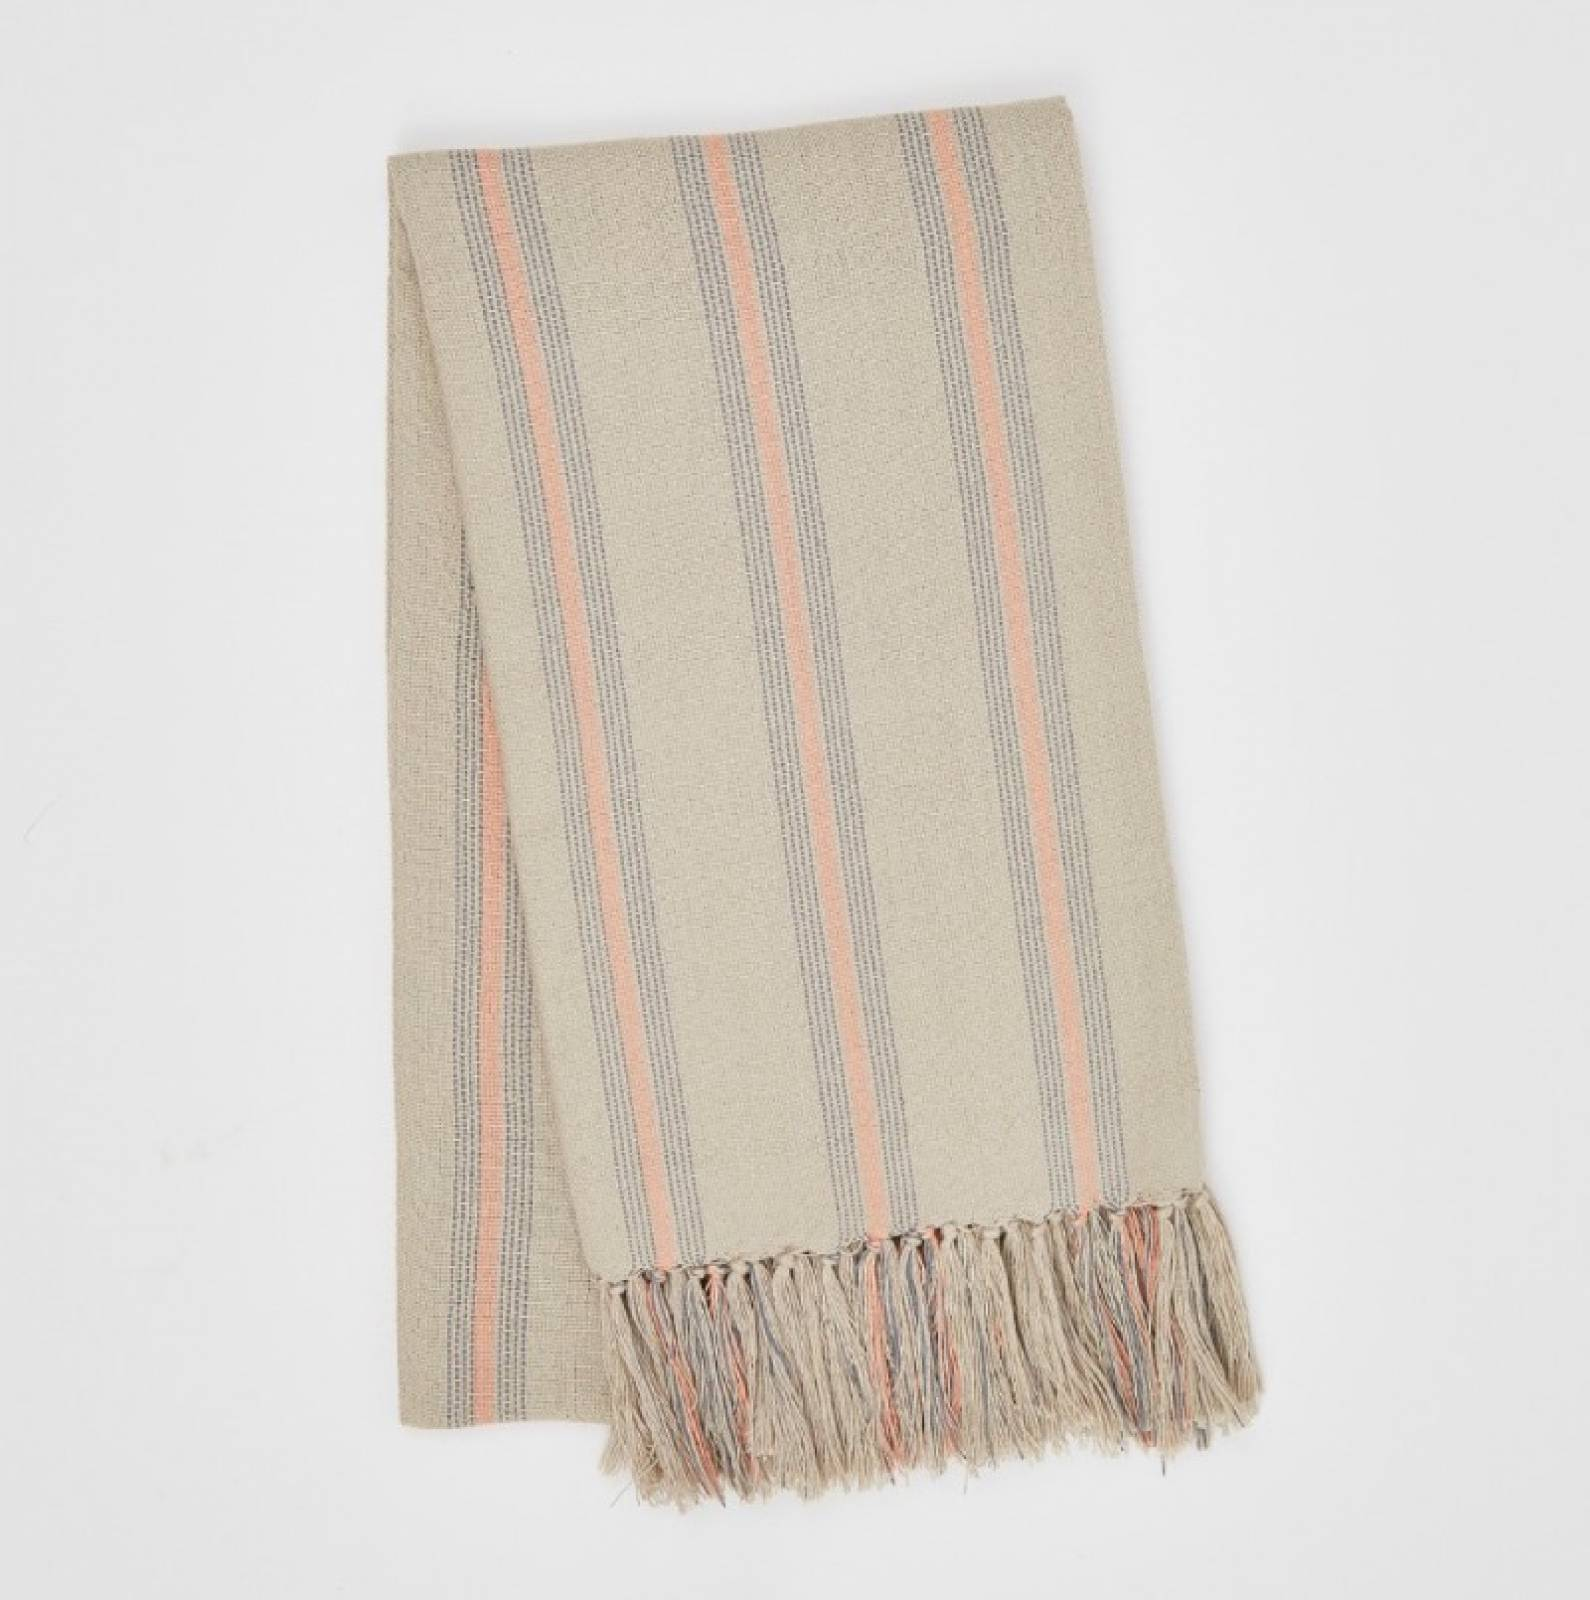 Cannes Coral & Grey Striped Throw Made From Plastic Bottles